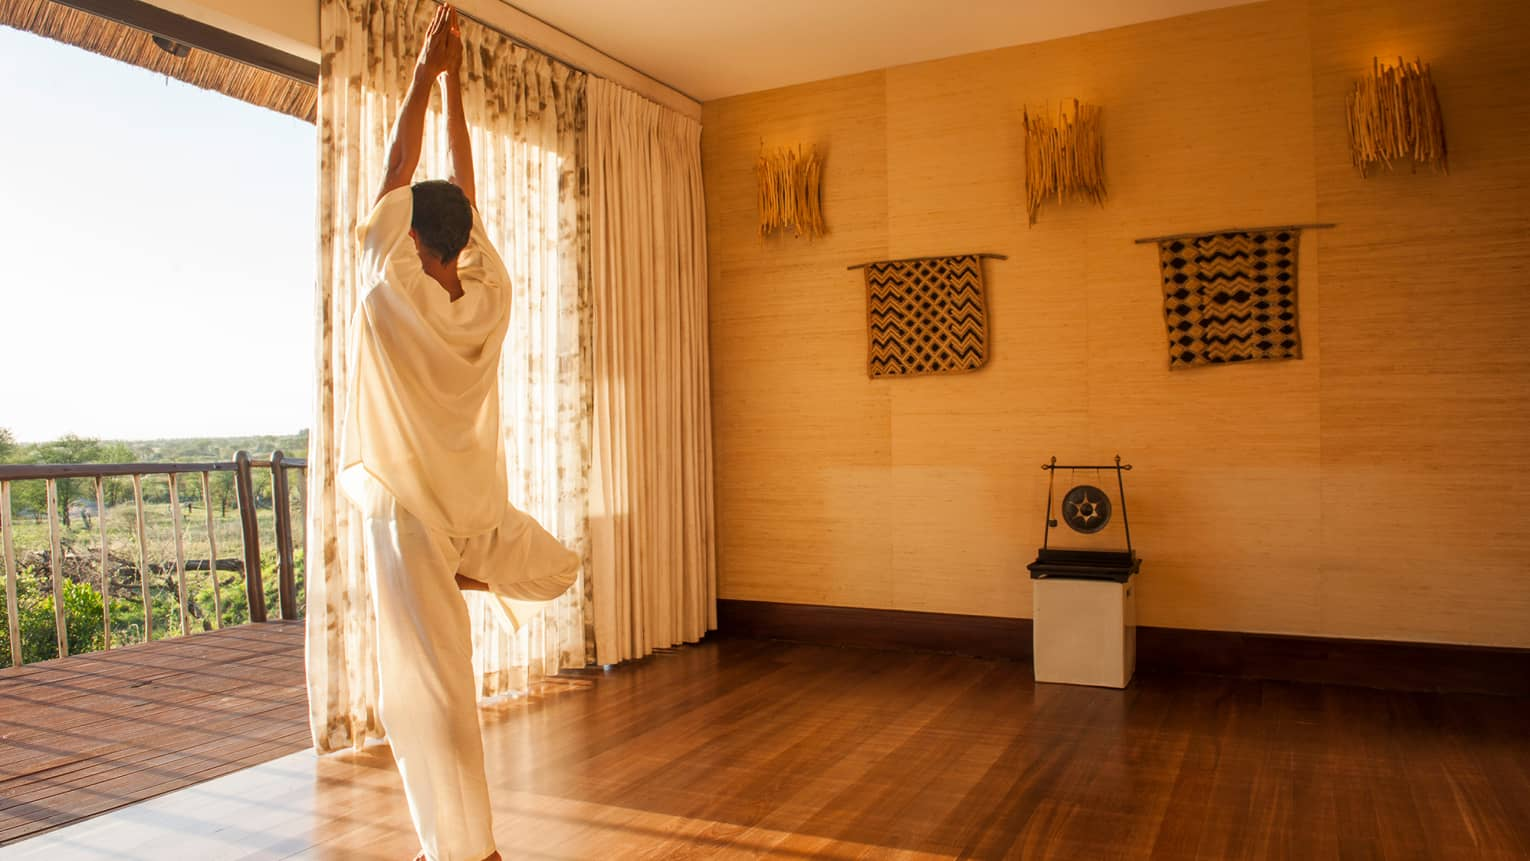 Woman in white linen outfit stands, balances in yoga pose